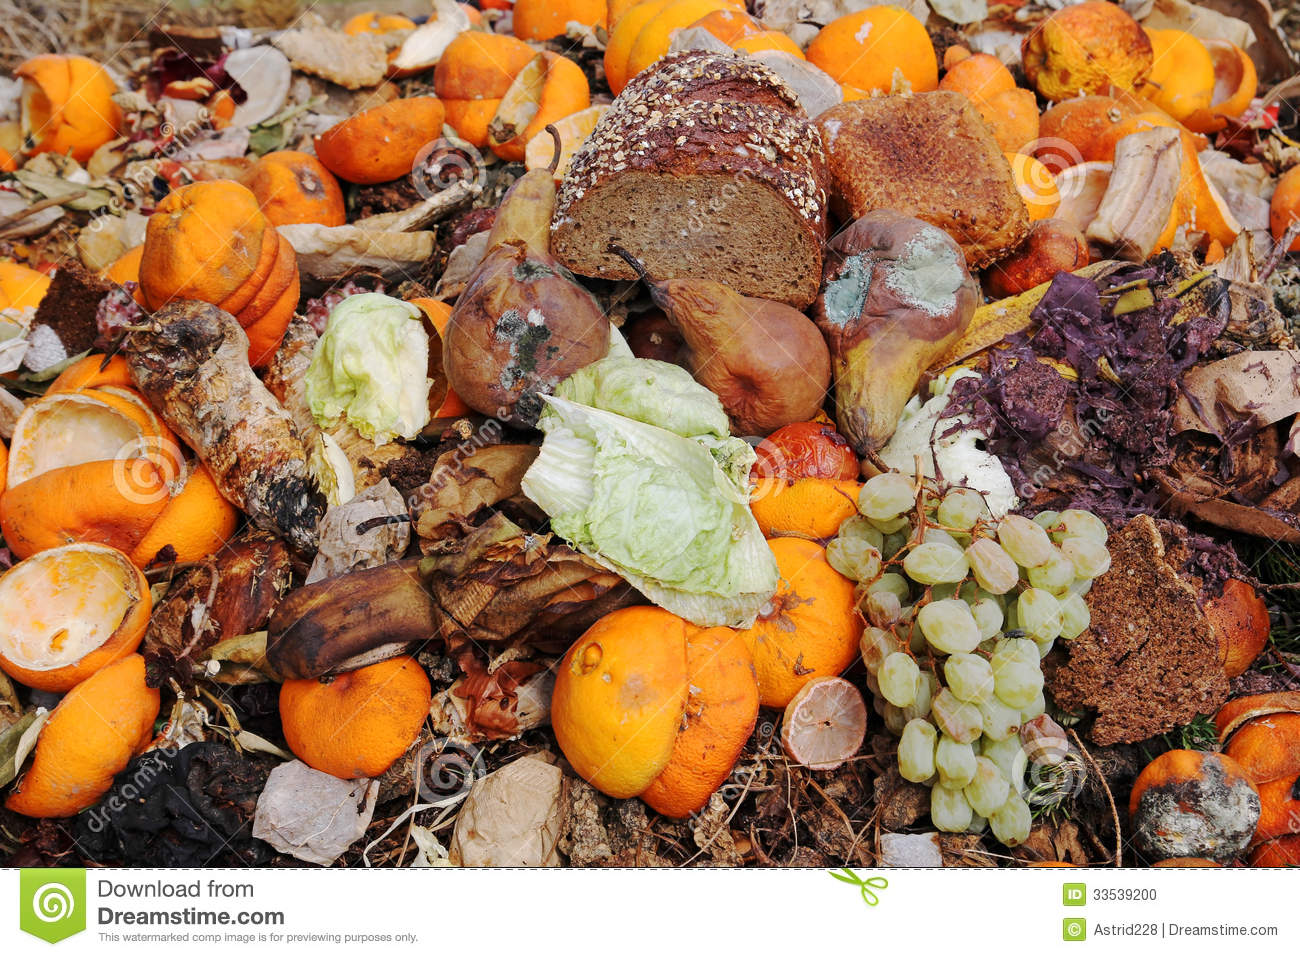 Organic Waste Stock Photo - Image: 33539200